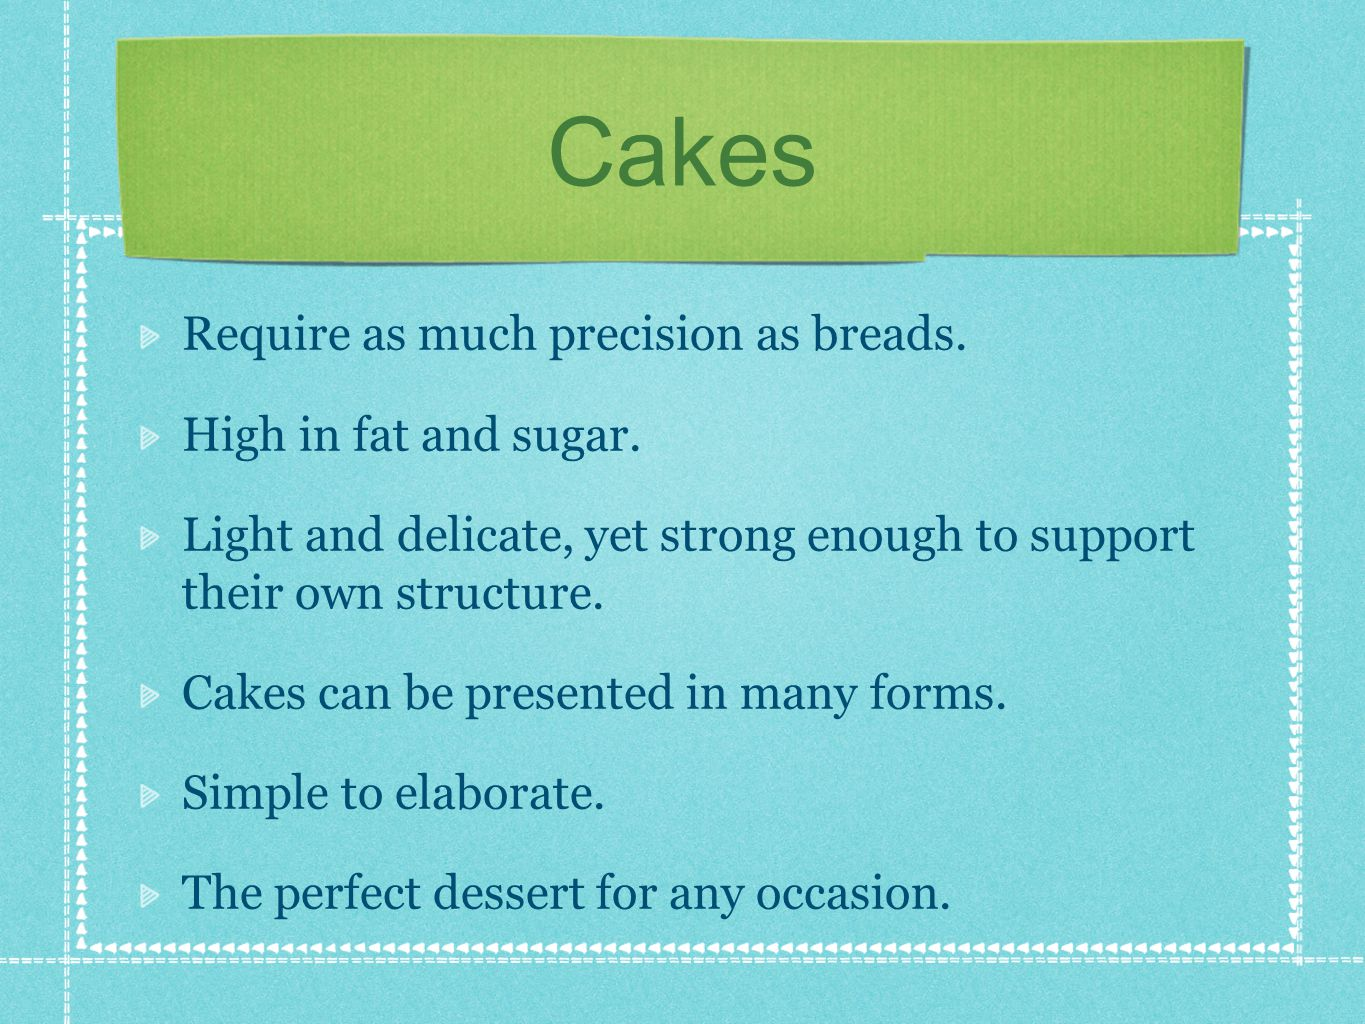 Cakes Require as much precision as breads. High in fat and sugar.